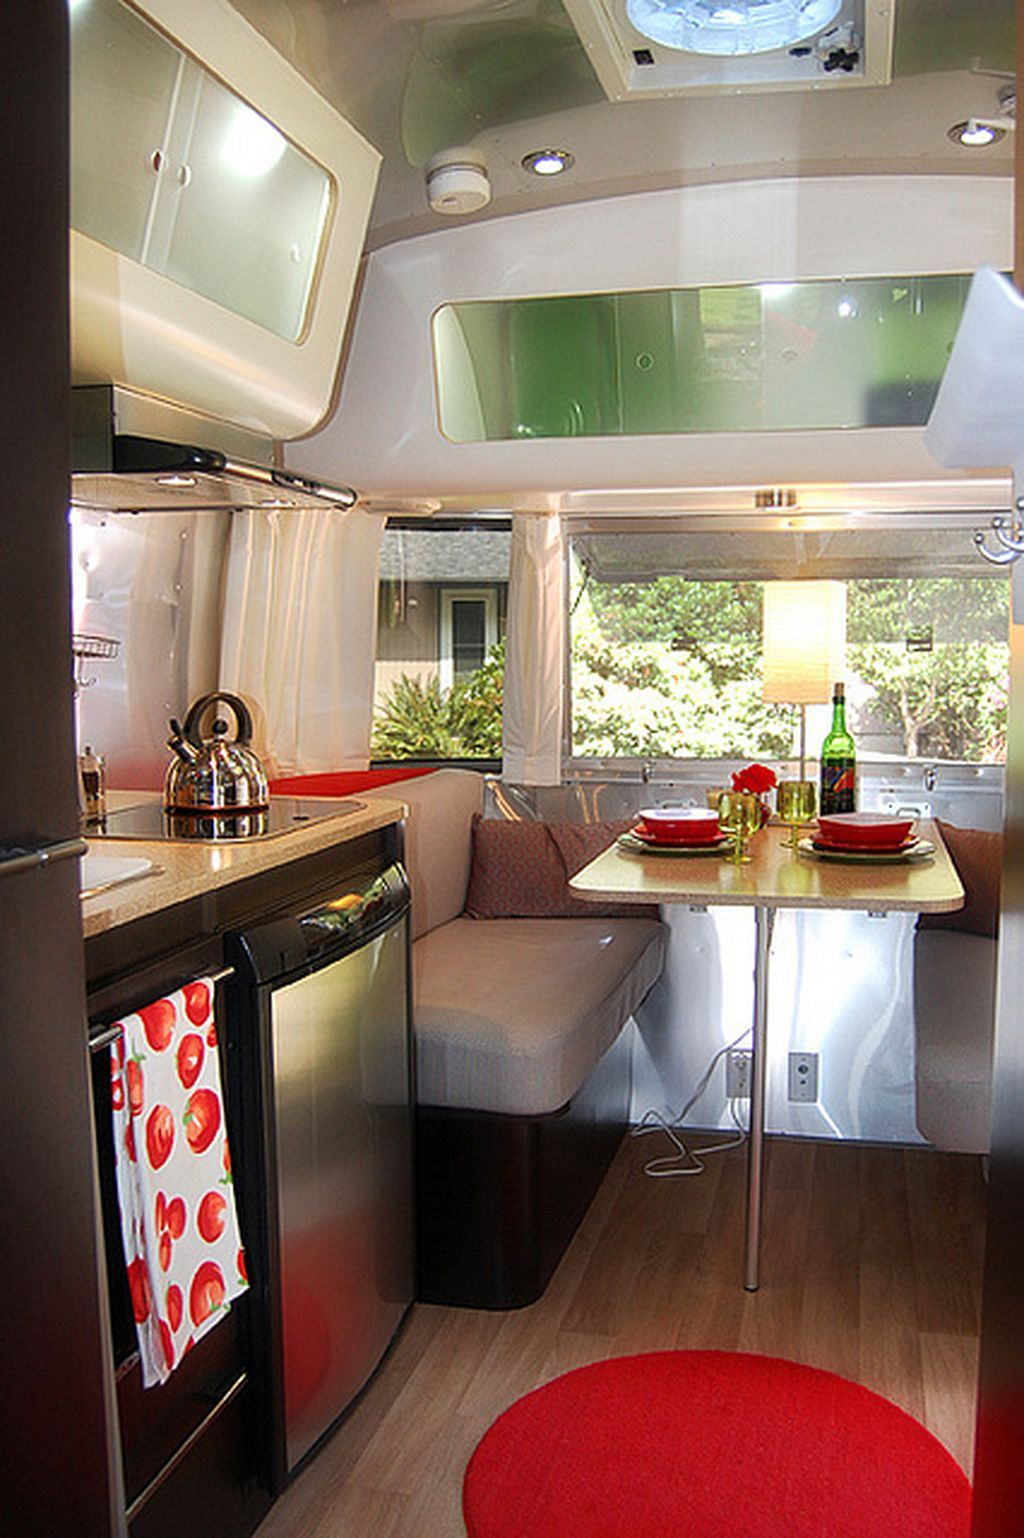 202 Modern Interior Ideas for RV Camper | Rv campers, Rv and ...